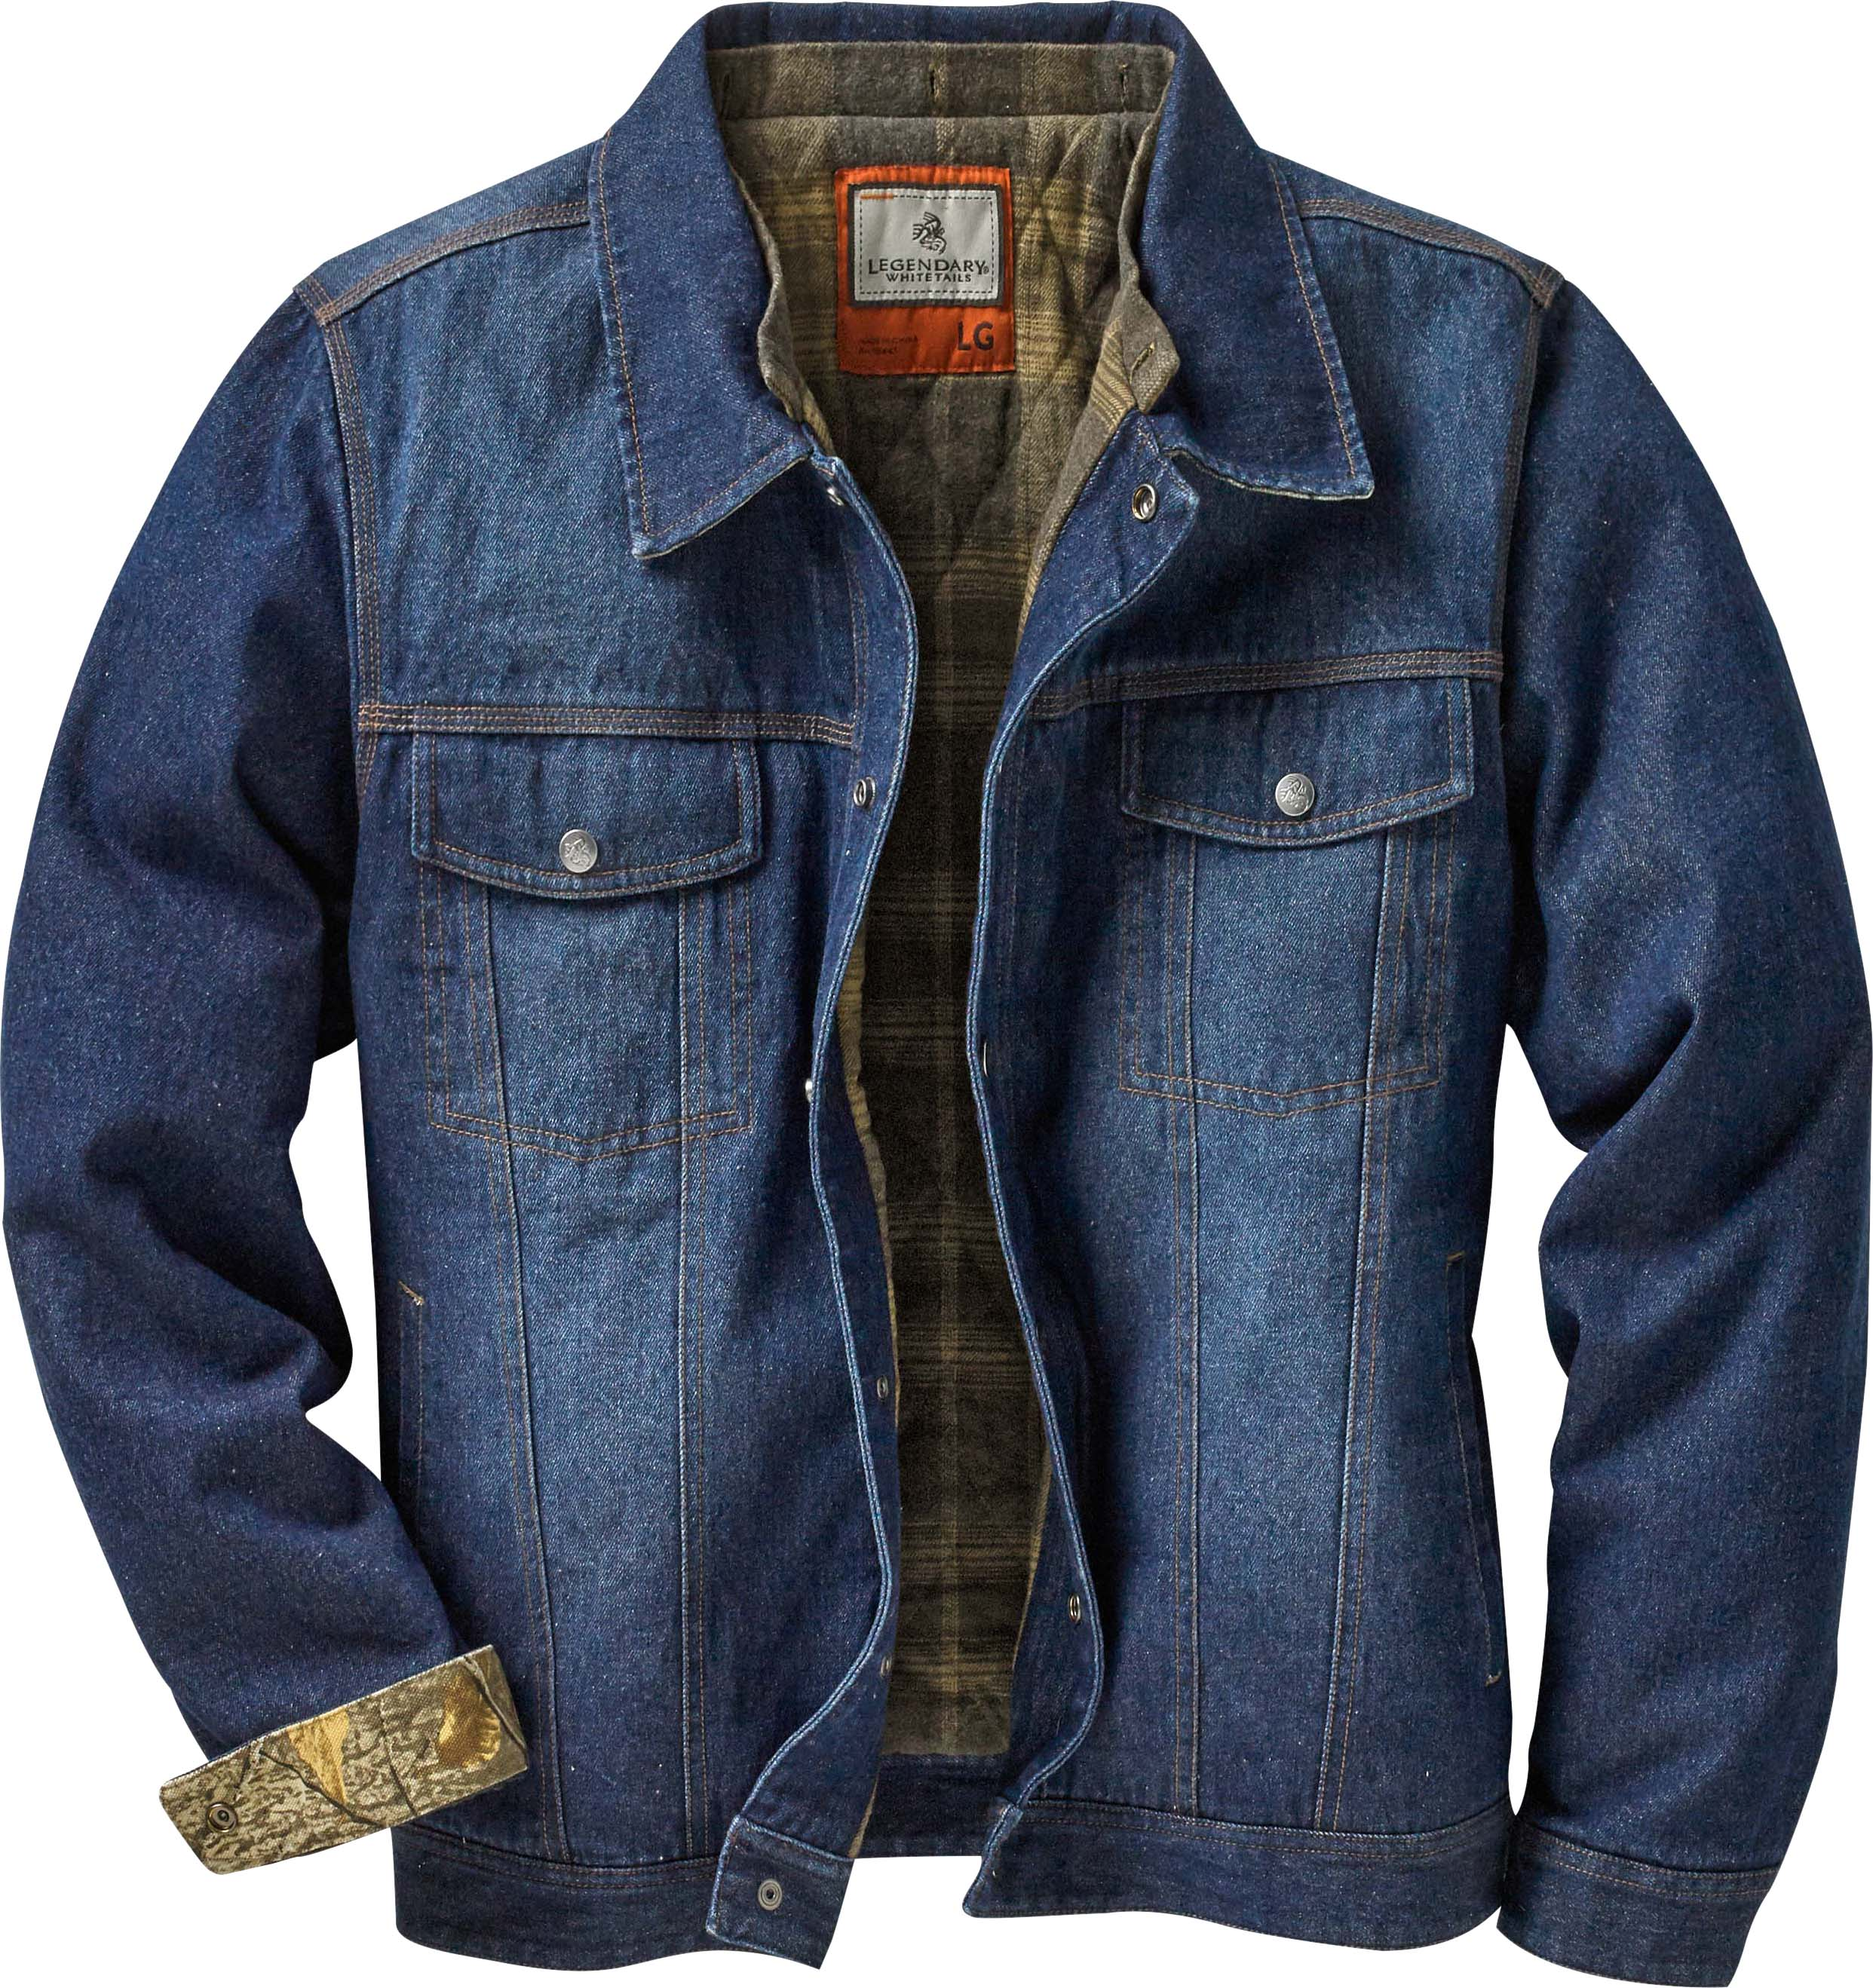 Hideout Conceal And Carry Denim Jacket Legendary Whitetails